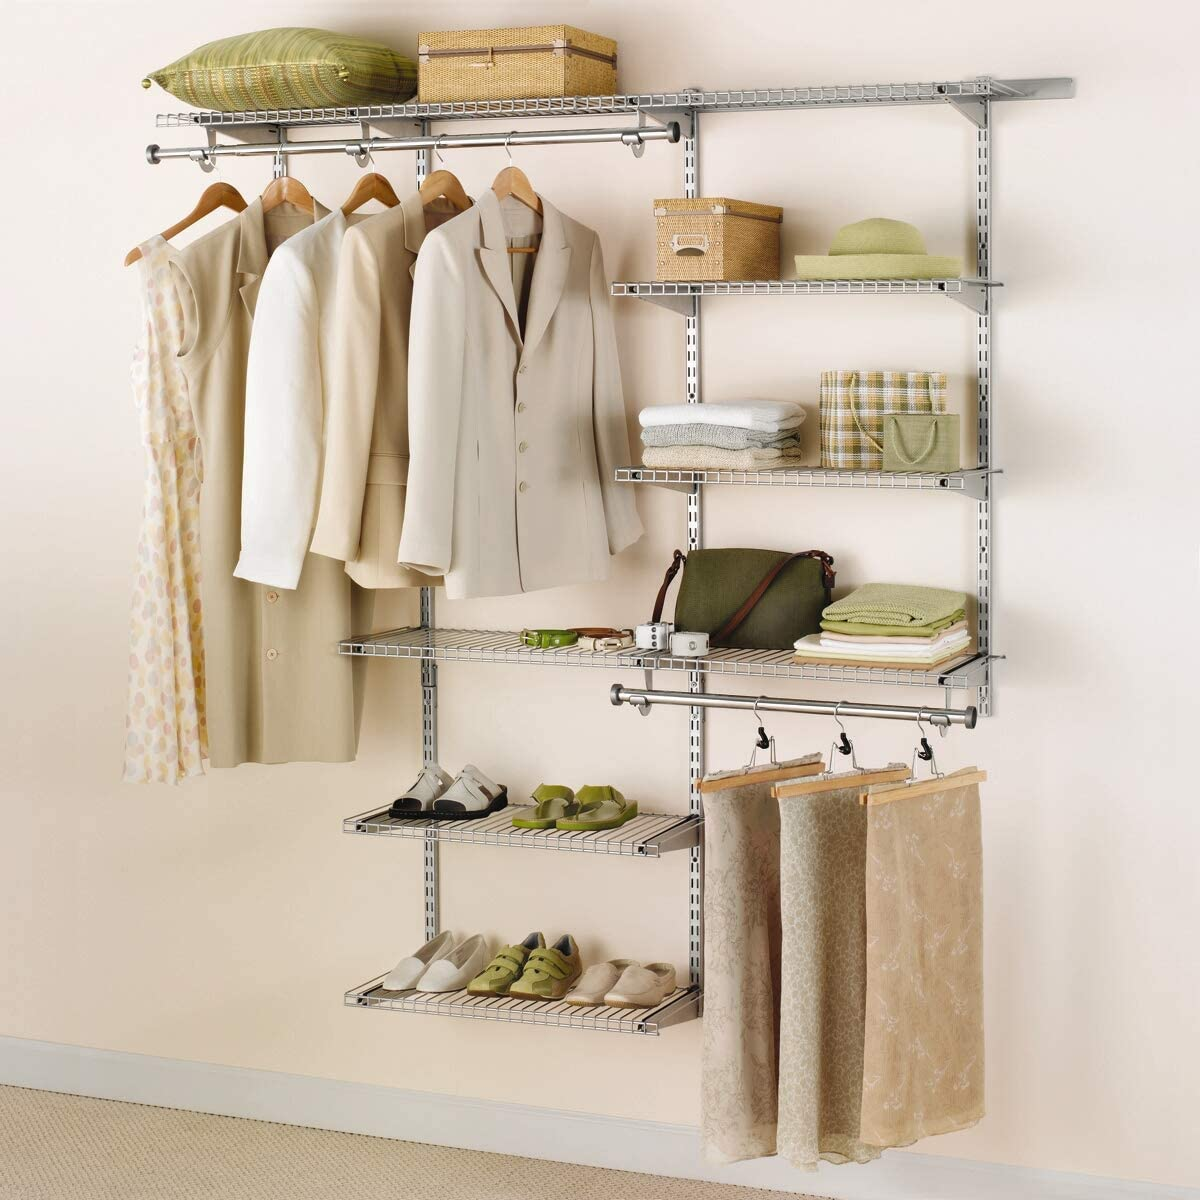 Delux Closet Wardrobes - Fashionable Rubbermaid Armoires